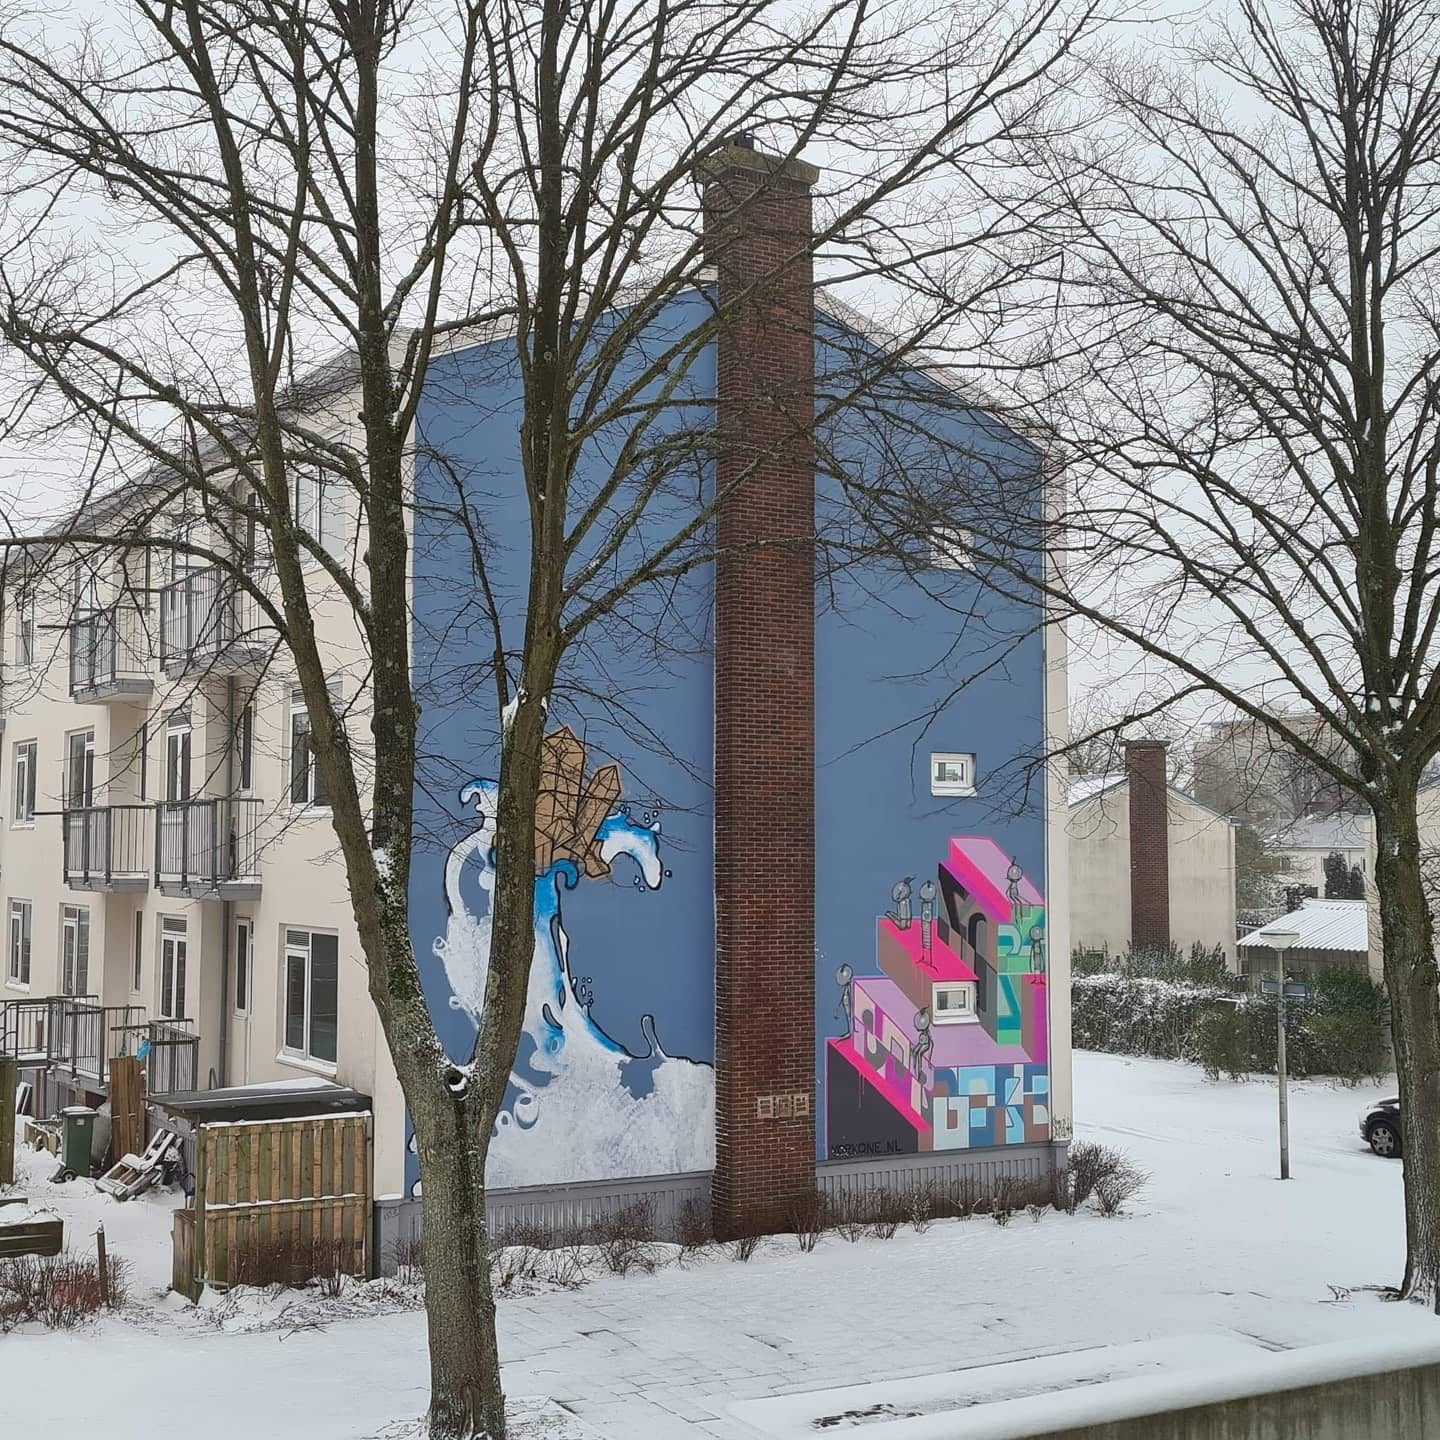 Today I was going to finish another Mural in Delft, but Mother Nature thought otherwise haha! This snowy picture was sent to me this morning by one of the neighbours First time working this big, really fun to do and so much to learn! Also very nice to meet and work alongside a few other muralists Thank you again @michadebie and @openartgallerydelft for involving me in this! 🥰#streetart #mural #bomenwijkdelft #oefenenoefenenoefenen #snowstorm #pasteart #wheatpasteart